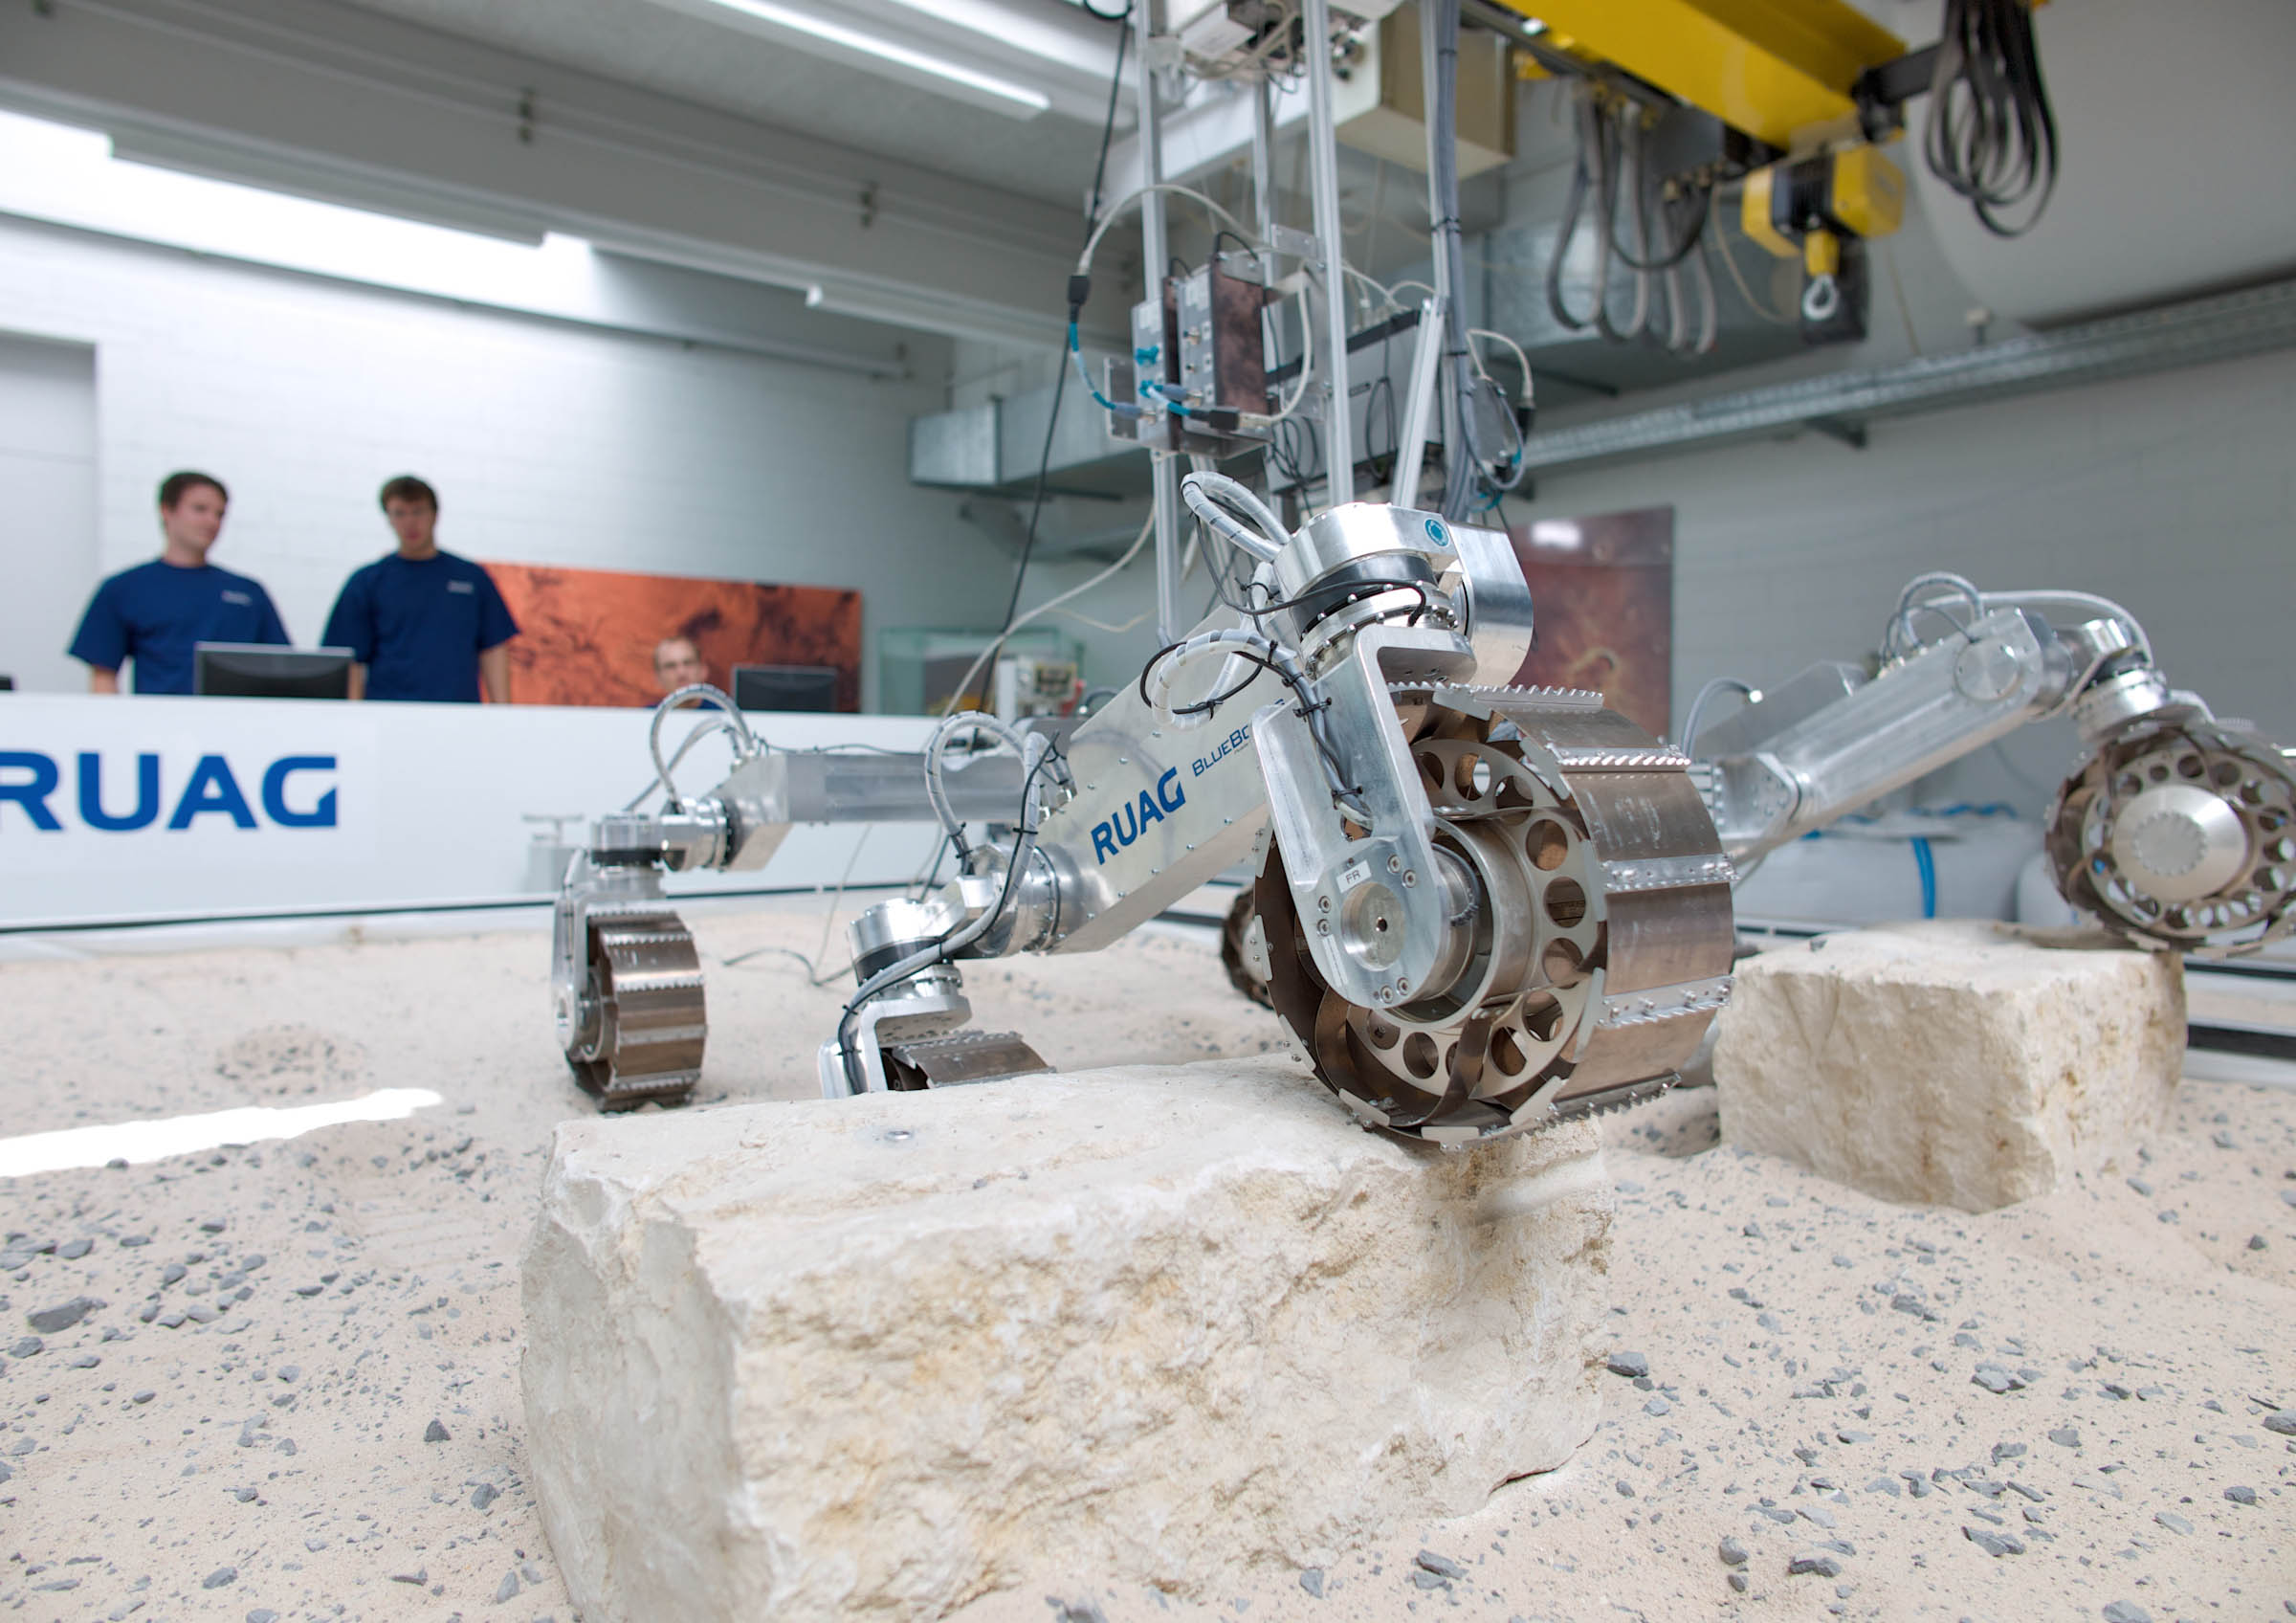 Ruag Space Employees Test The Exomars Rover Locomotion System In